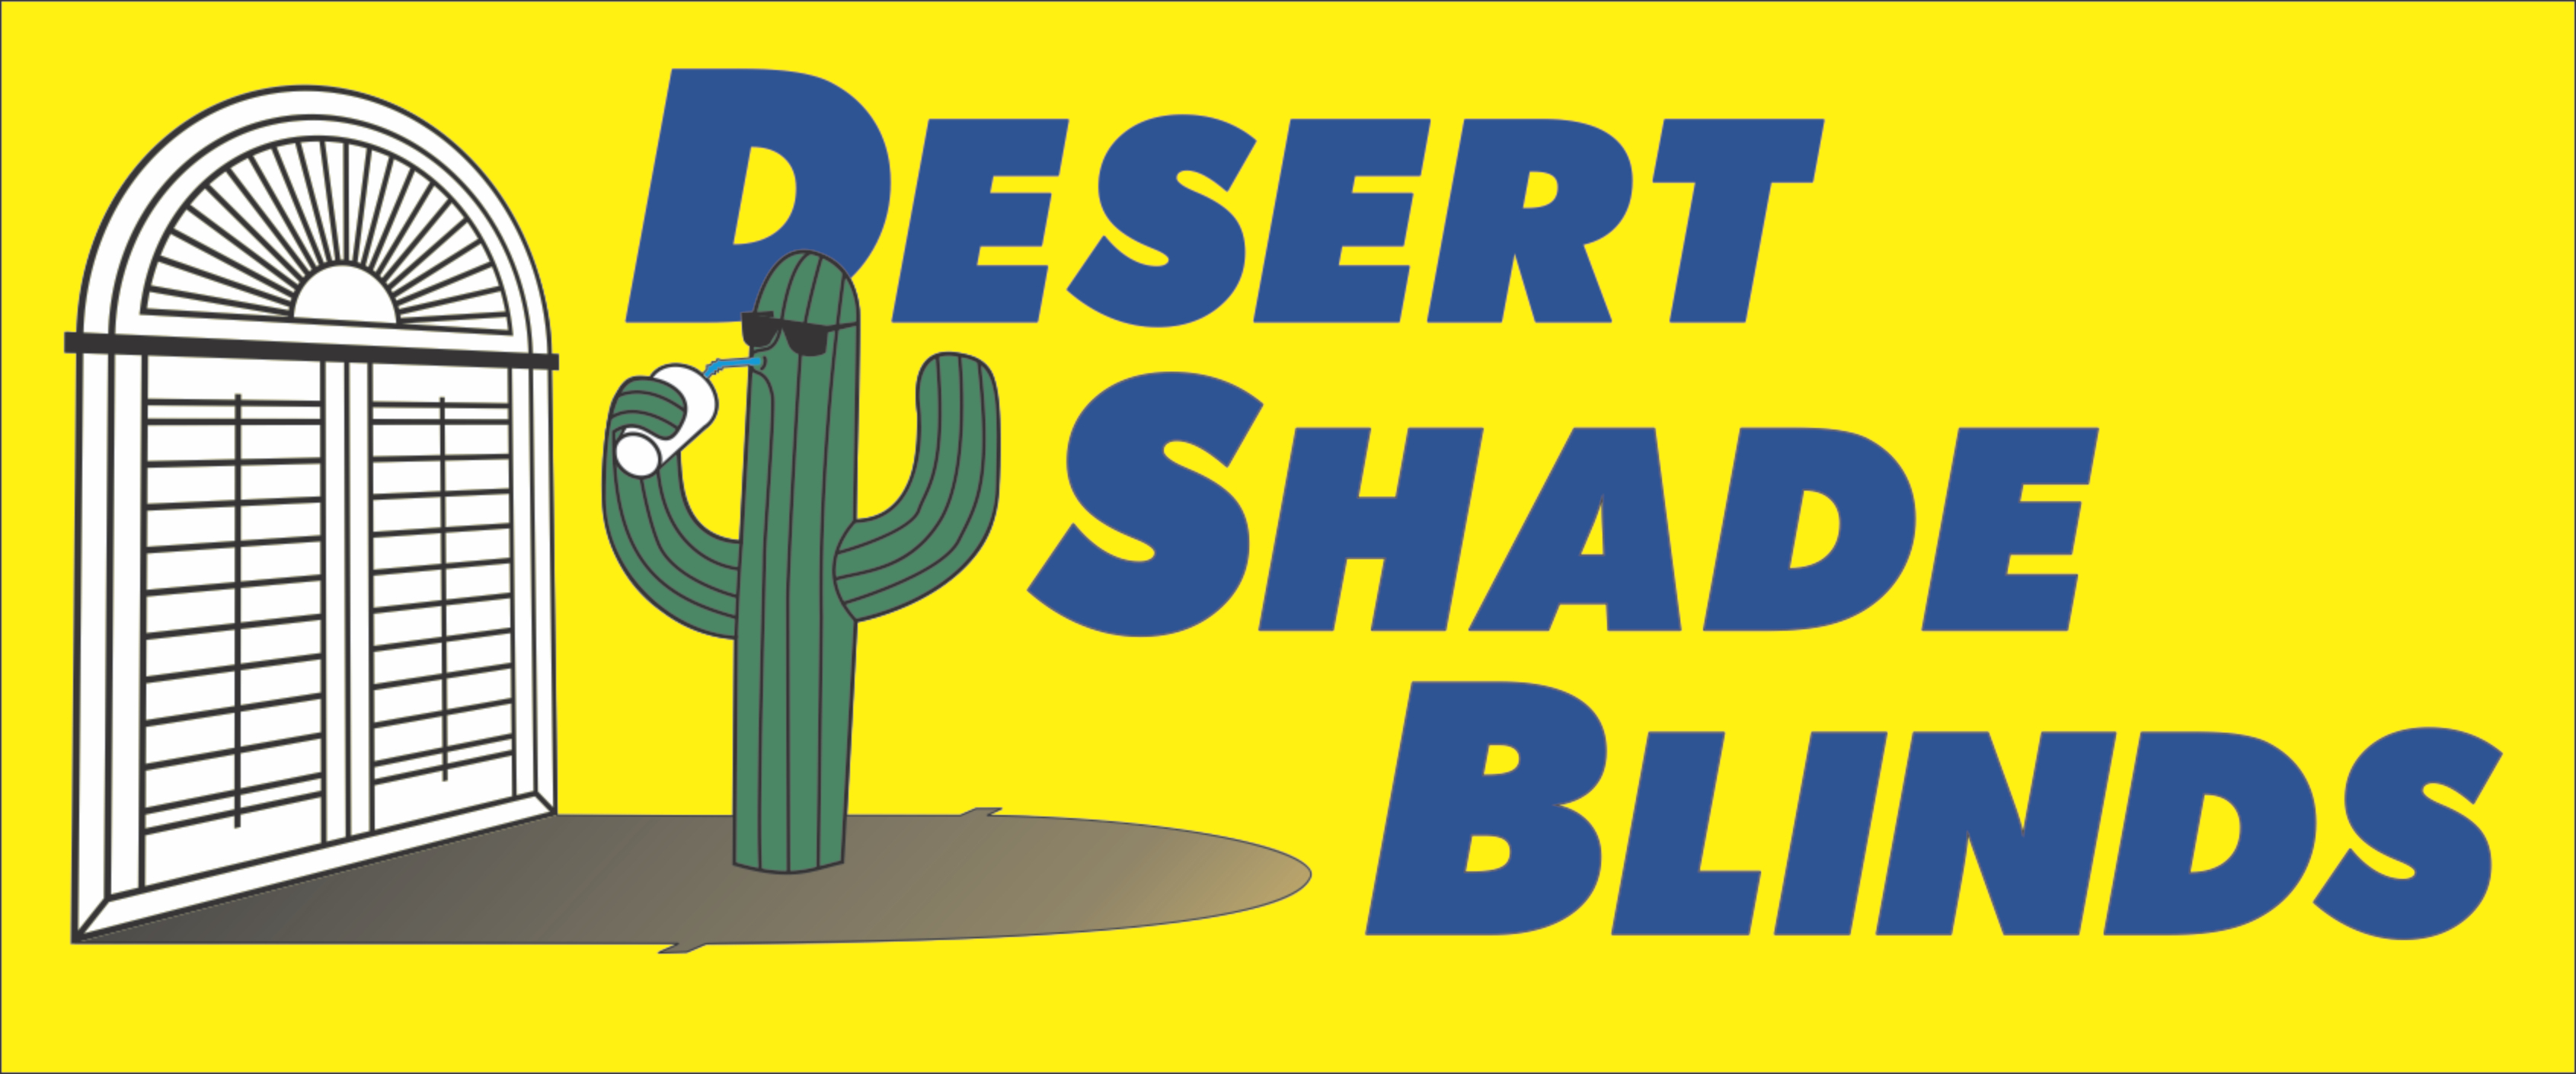 Desert Shade Blinds